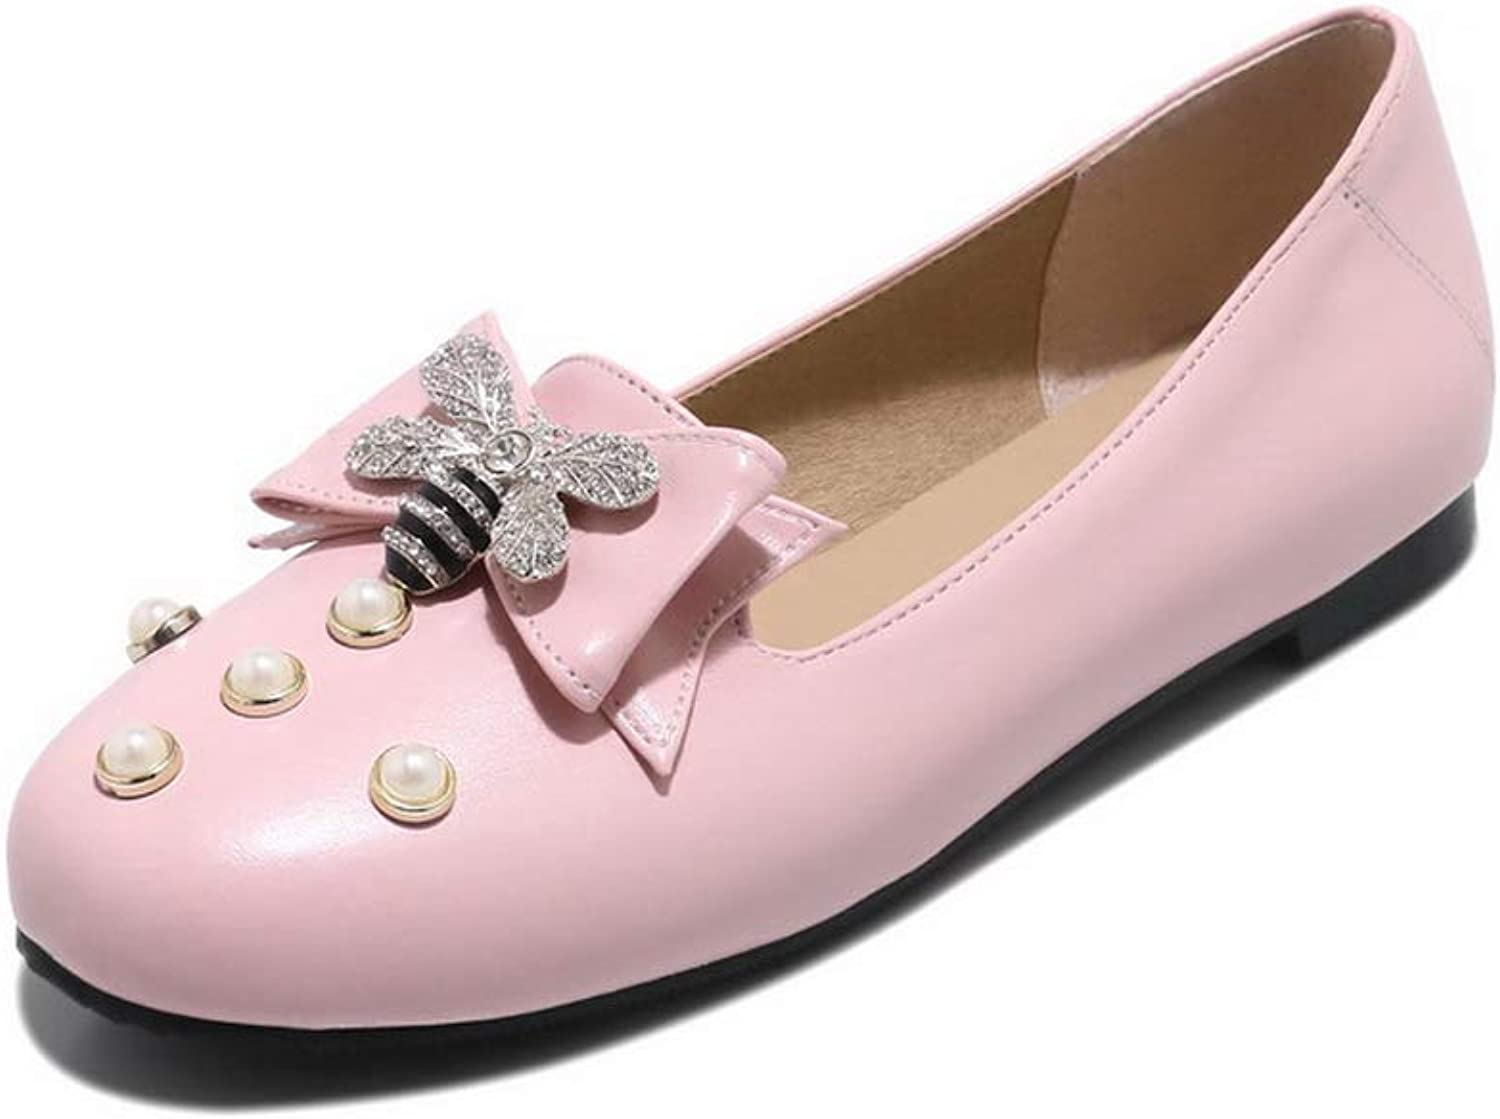 1TO9 Womens Studded Bows Beaded Urethane Pumps shoes MMS06273